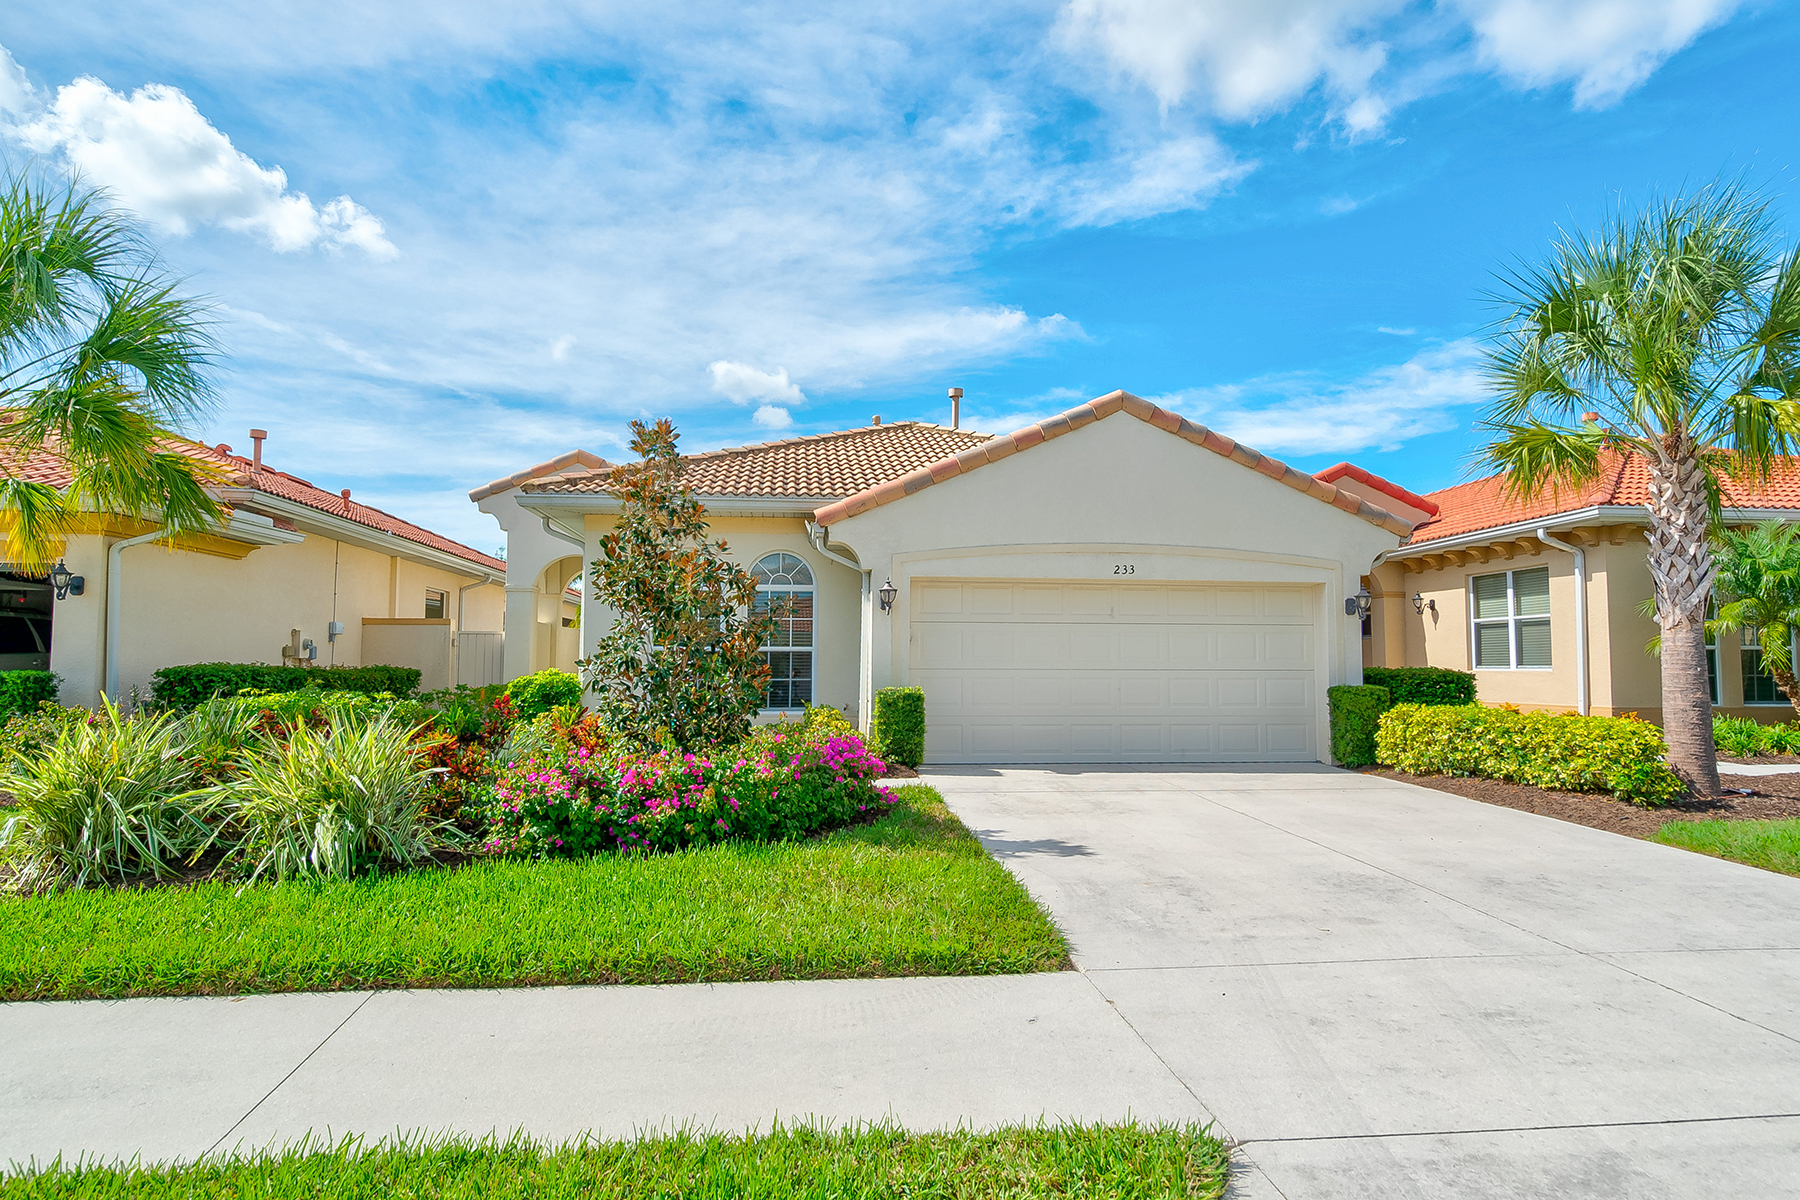 Single Family Homes for Sale at VENETIAN GOLF & RIVER CLUB 233 Mestre Pl North Venice, Florida 34275 United States